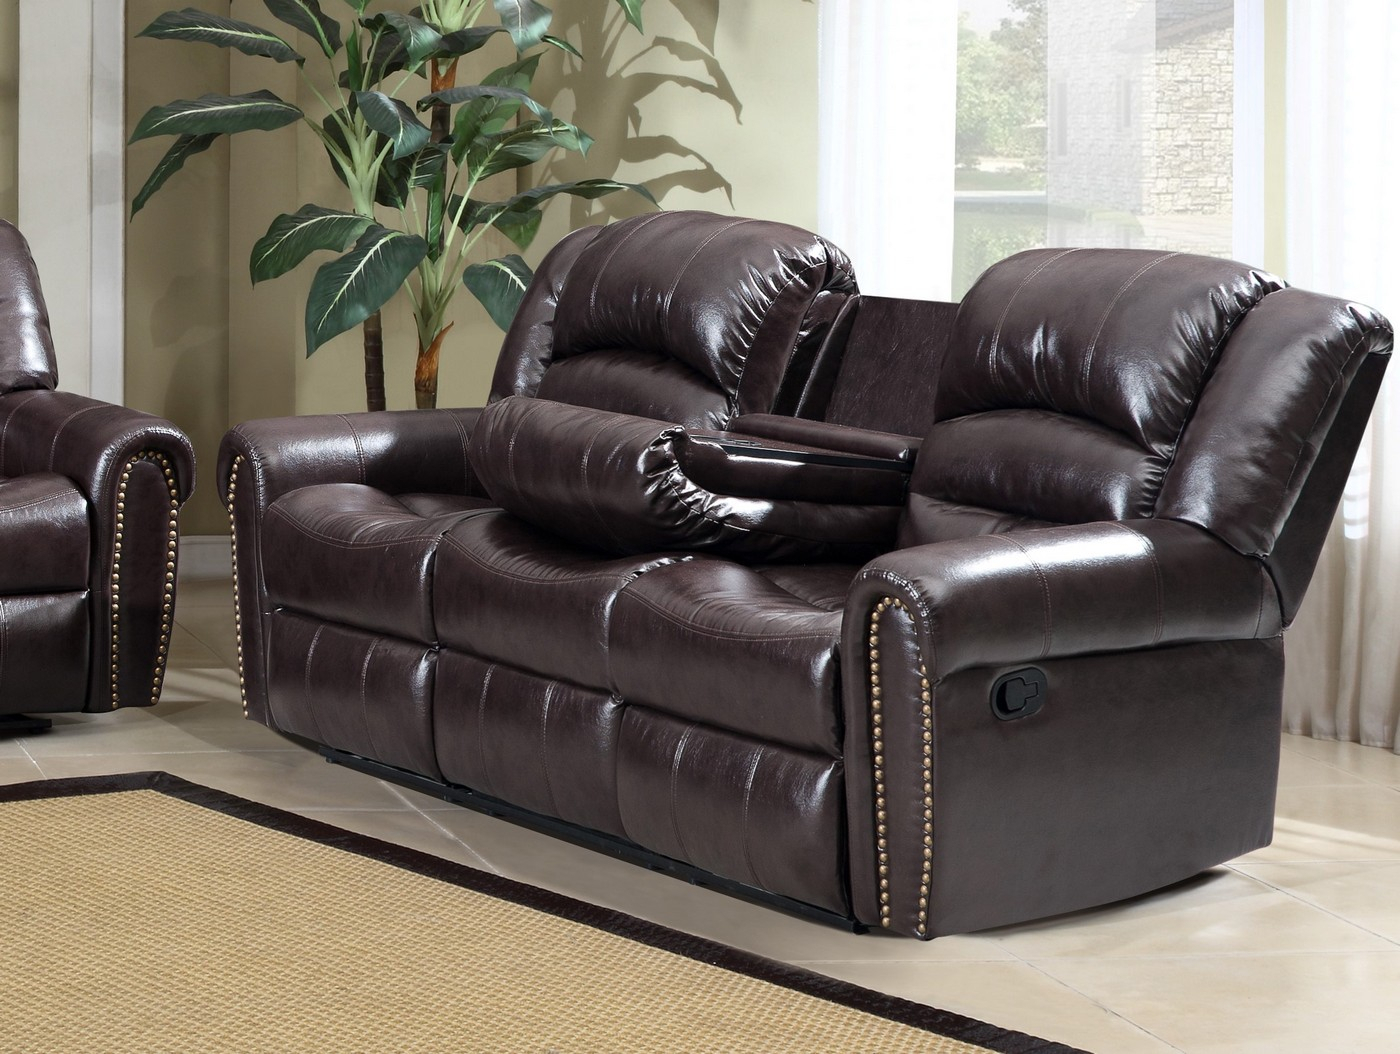 684 Brown Leather Reclining Sofa With Console And Nailhead With Regard To Brown Sofa Chairs (View 13 of 15)